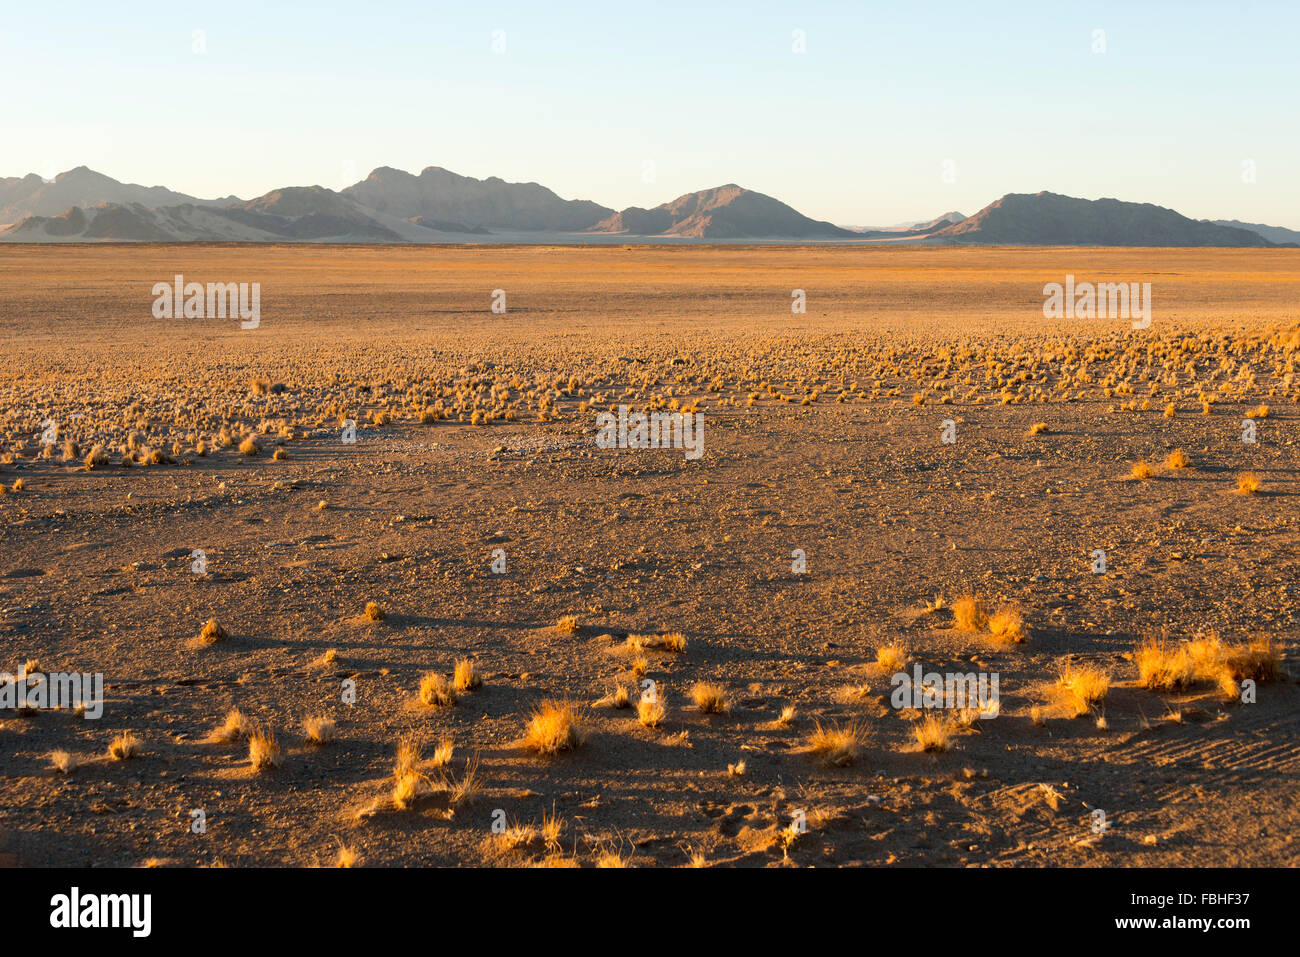 Desert scene, Namib Naukluft Park, Namib Desert, Republic of Namibia Stock Photo